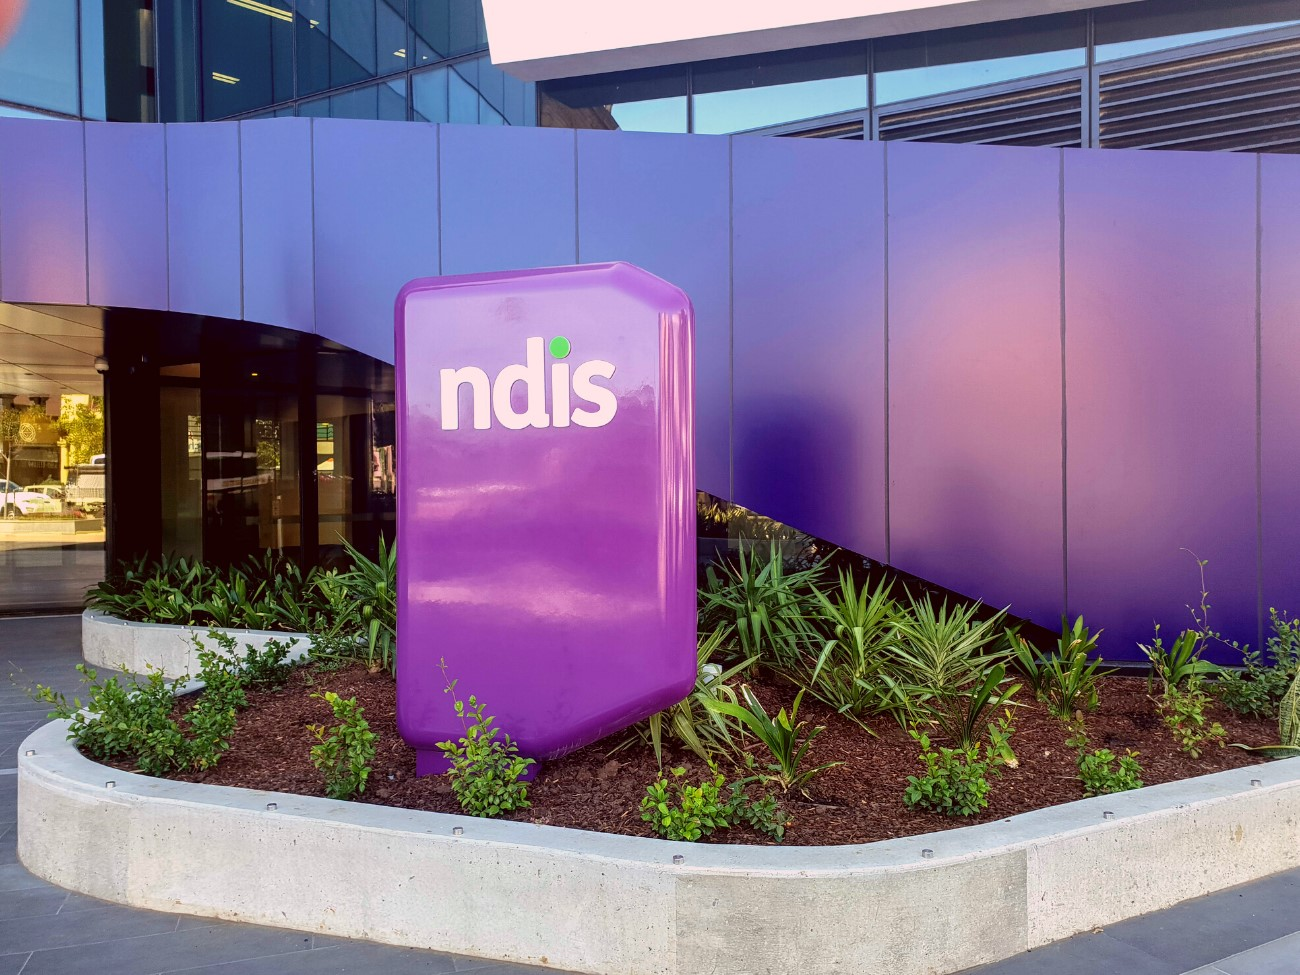 South Australia has introduced new laws that will regulate the use of restrictive practices by NDIS providers.